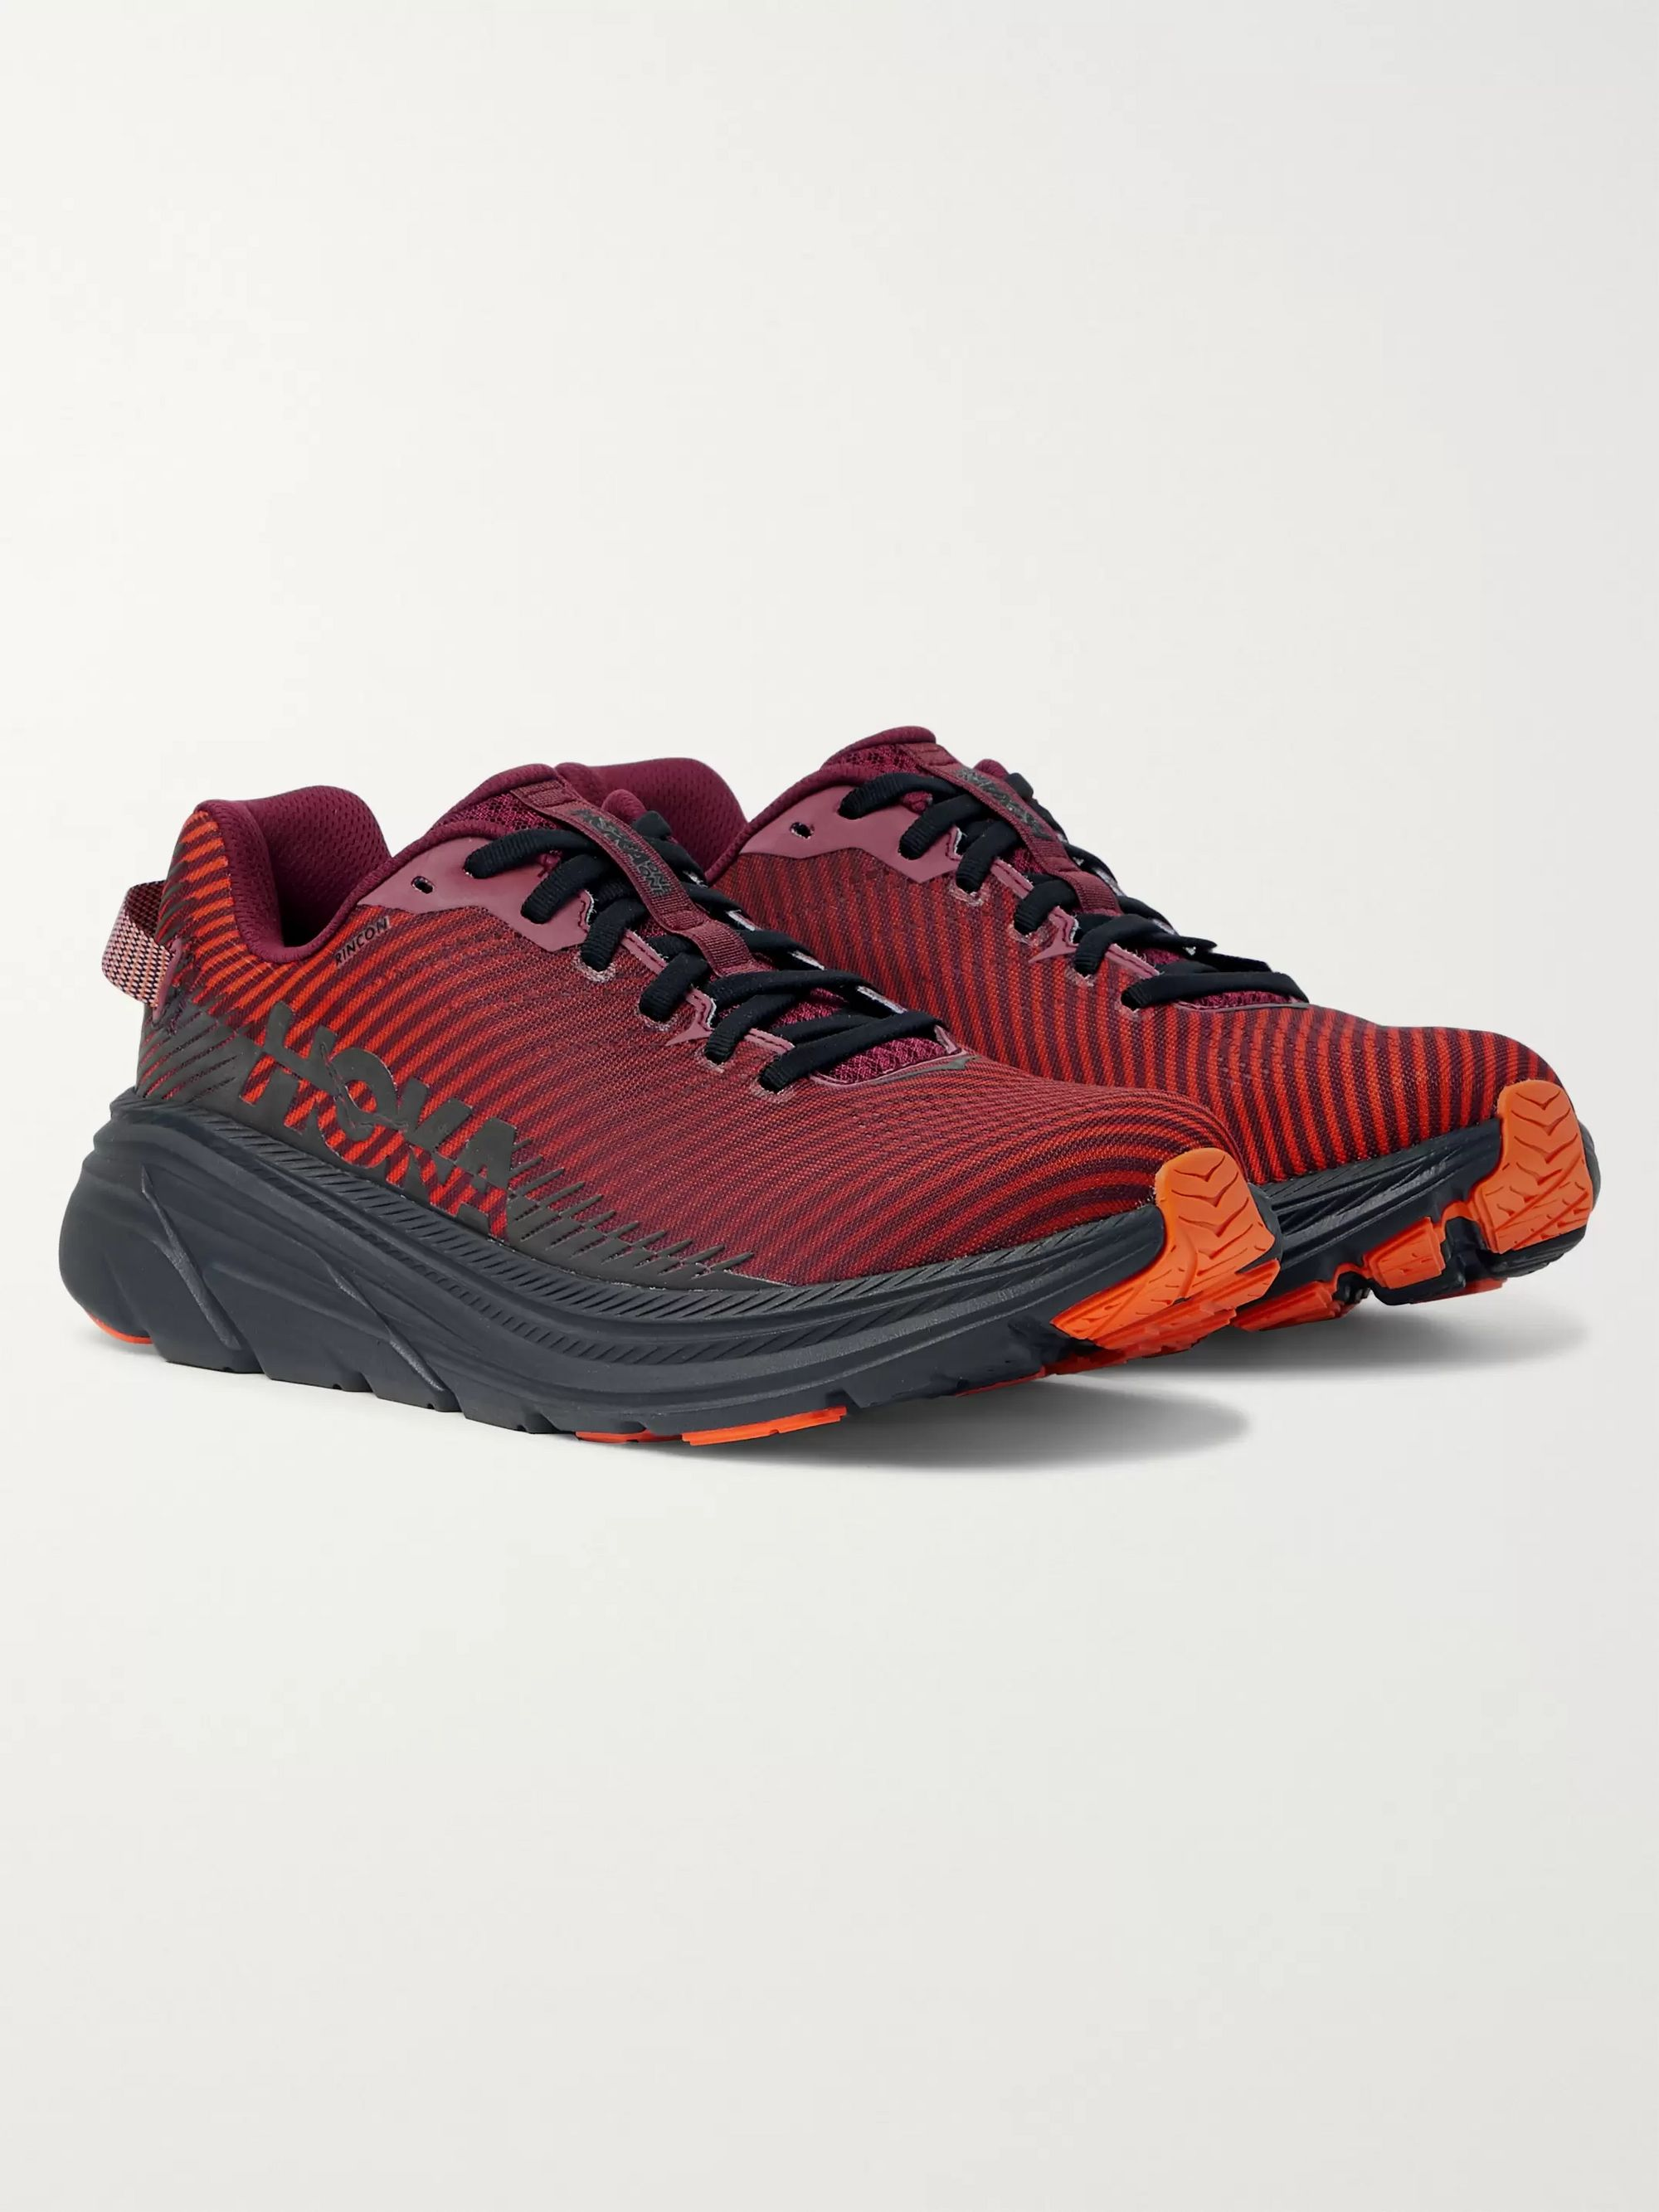 Hoka One One Rincon 2 Striped Mesh Running Sneakers